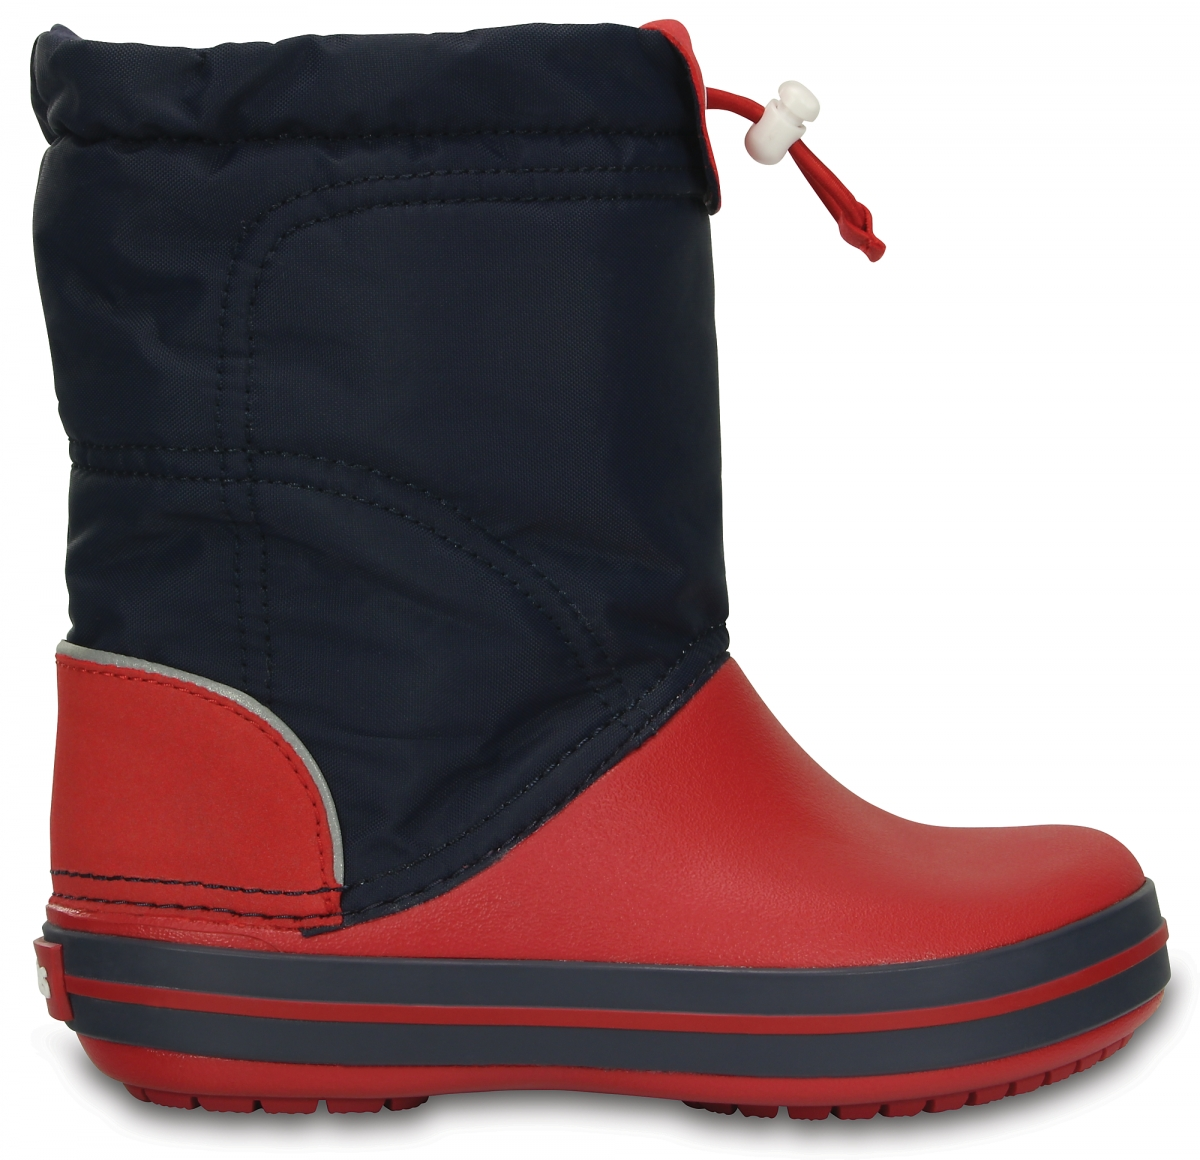 Crocs Crocband LodgePoint Boot Kids - Navy/Red, C11 (28-29)